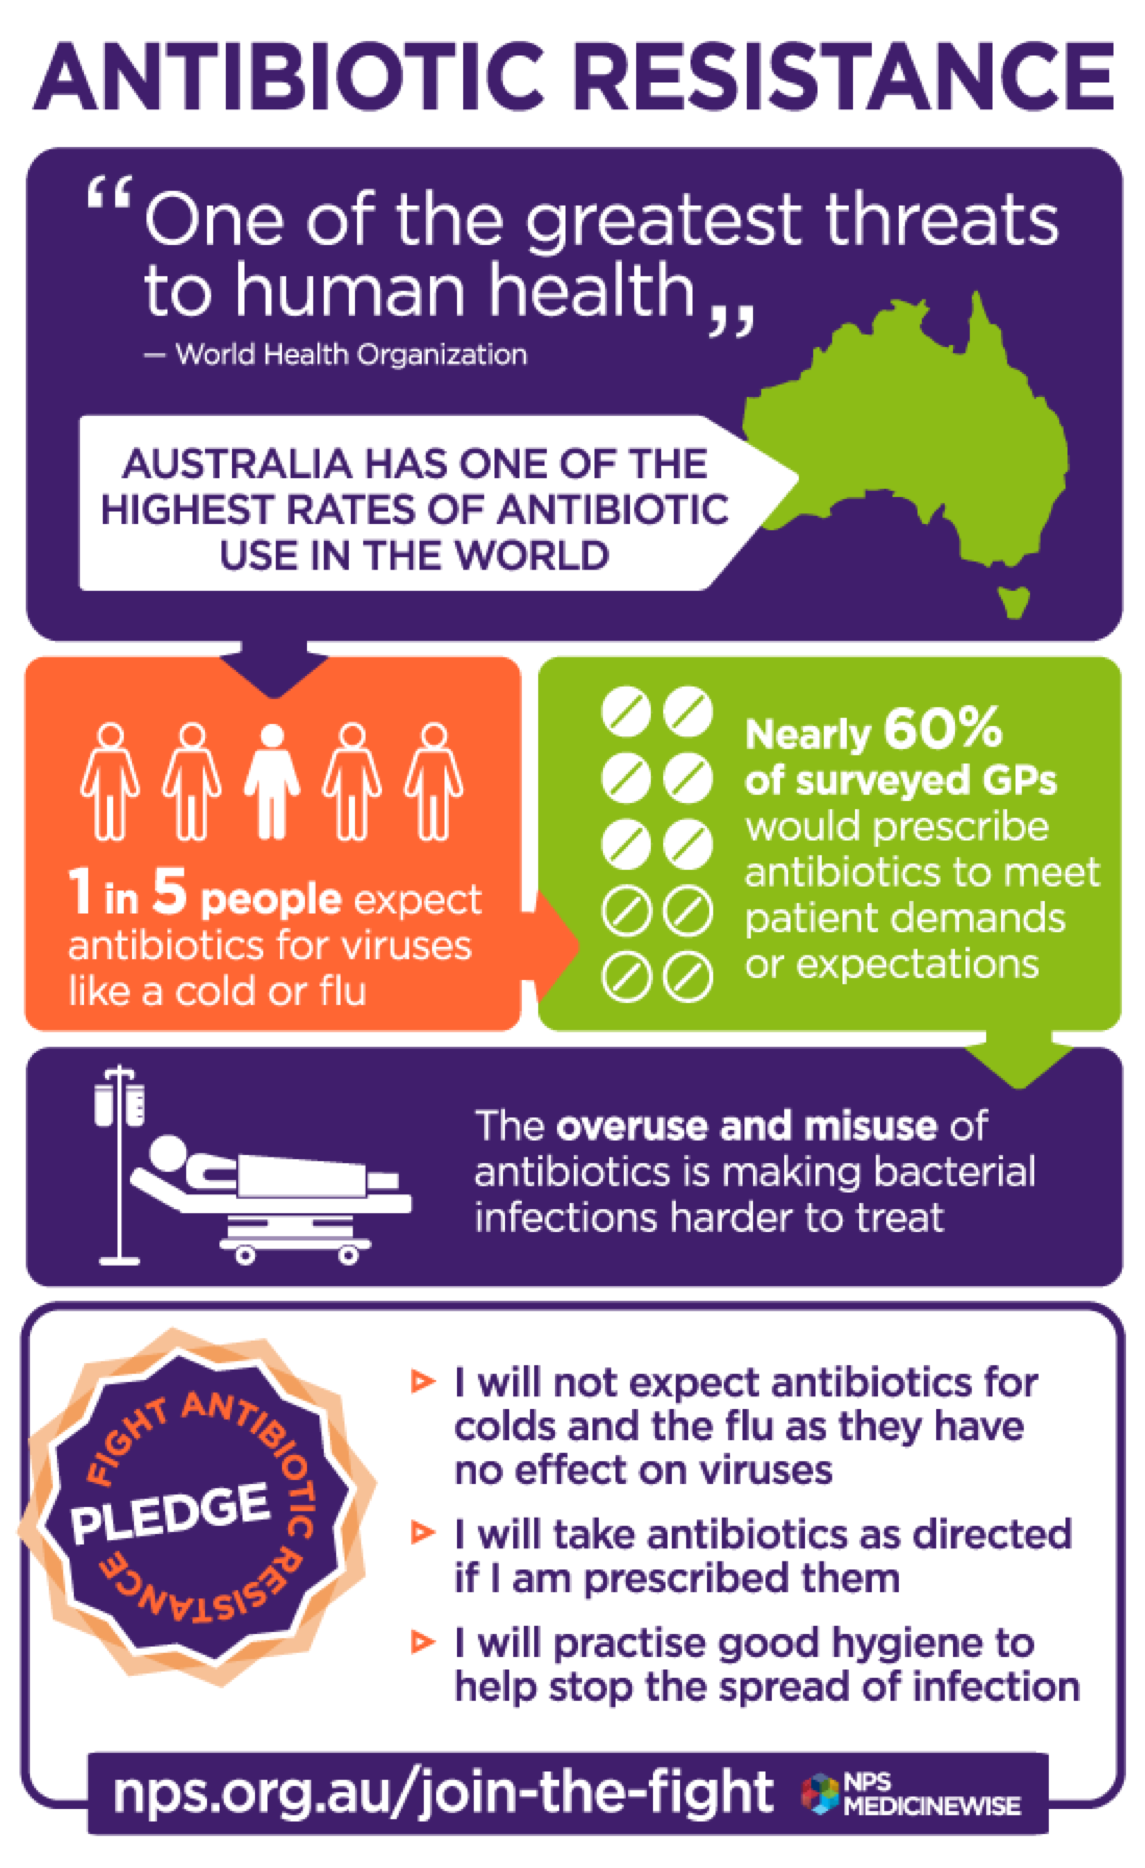 Choosing Wisely Australia Antibiotic Resistance Infographic